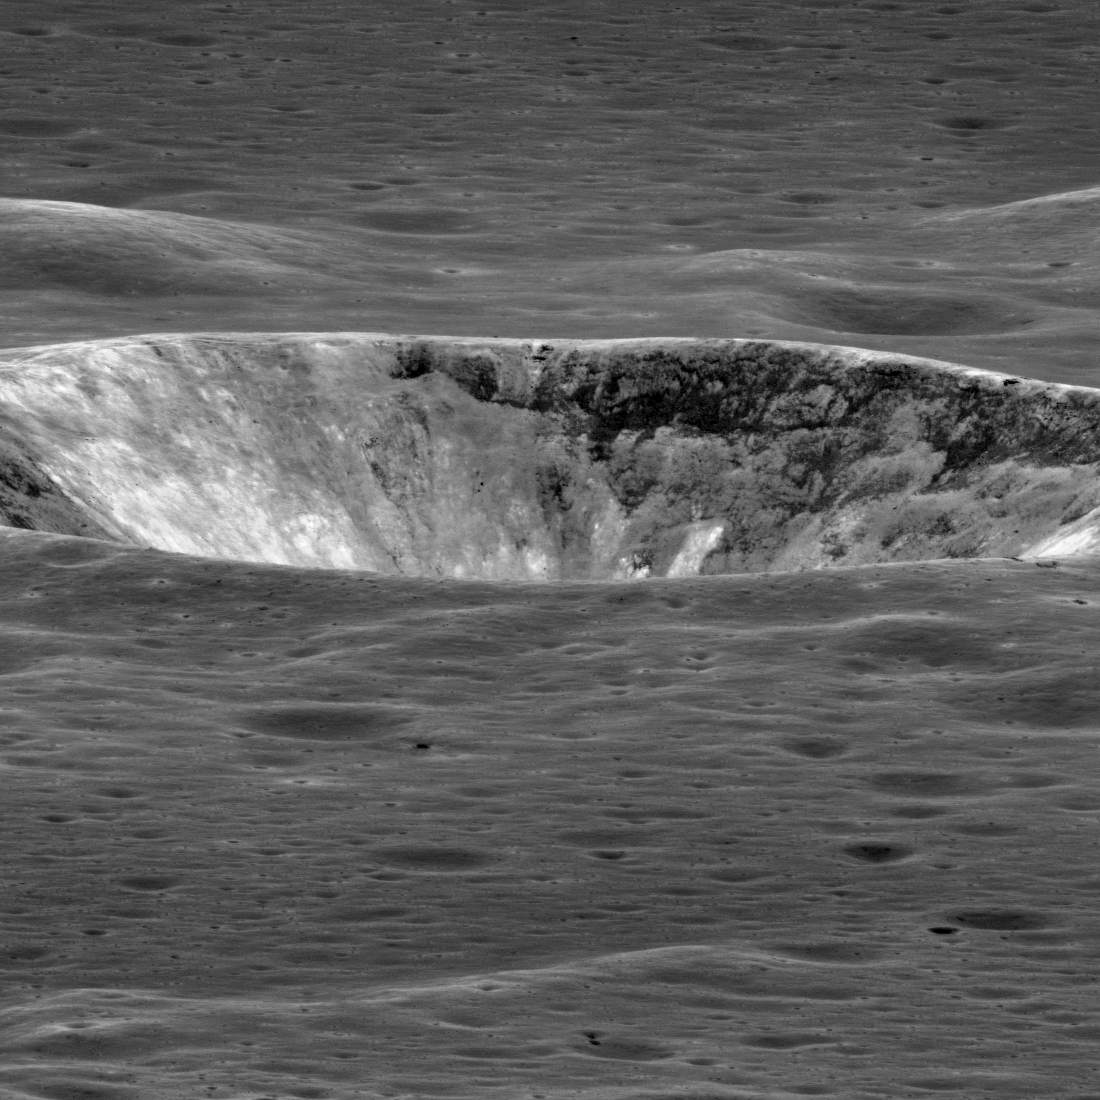 Wallach crater